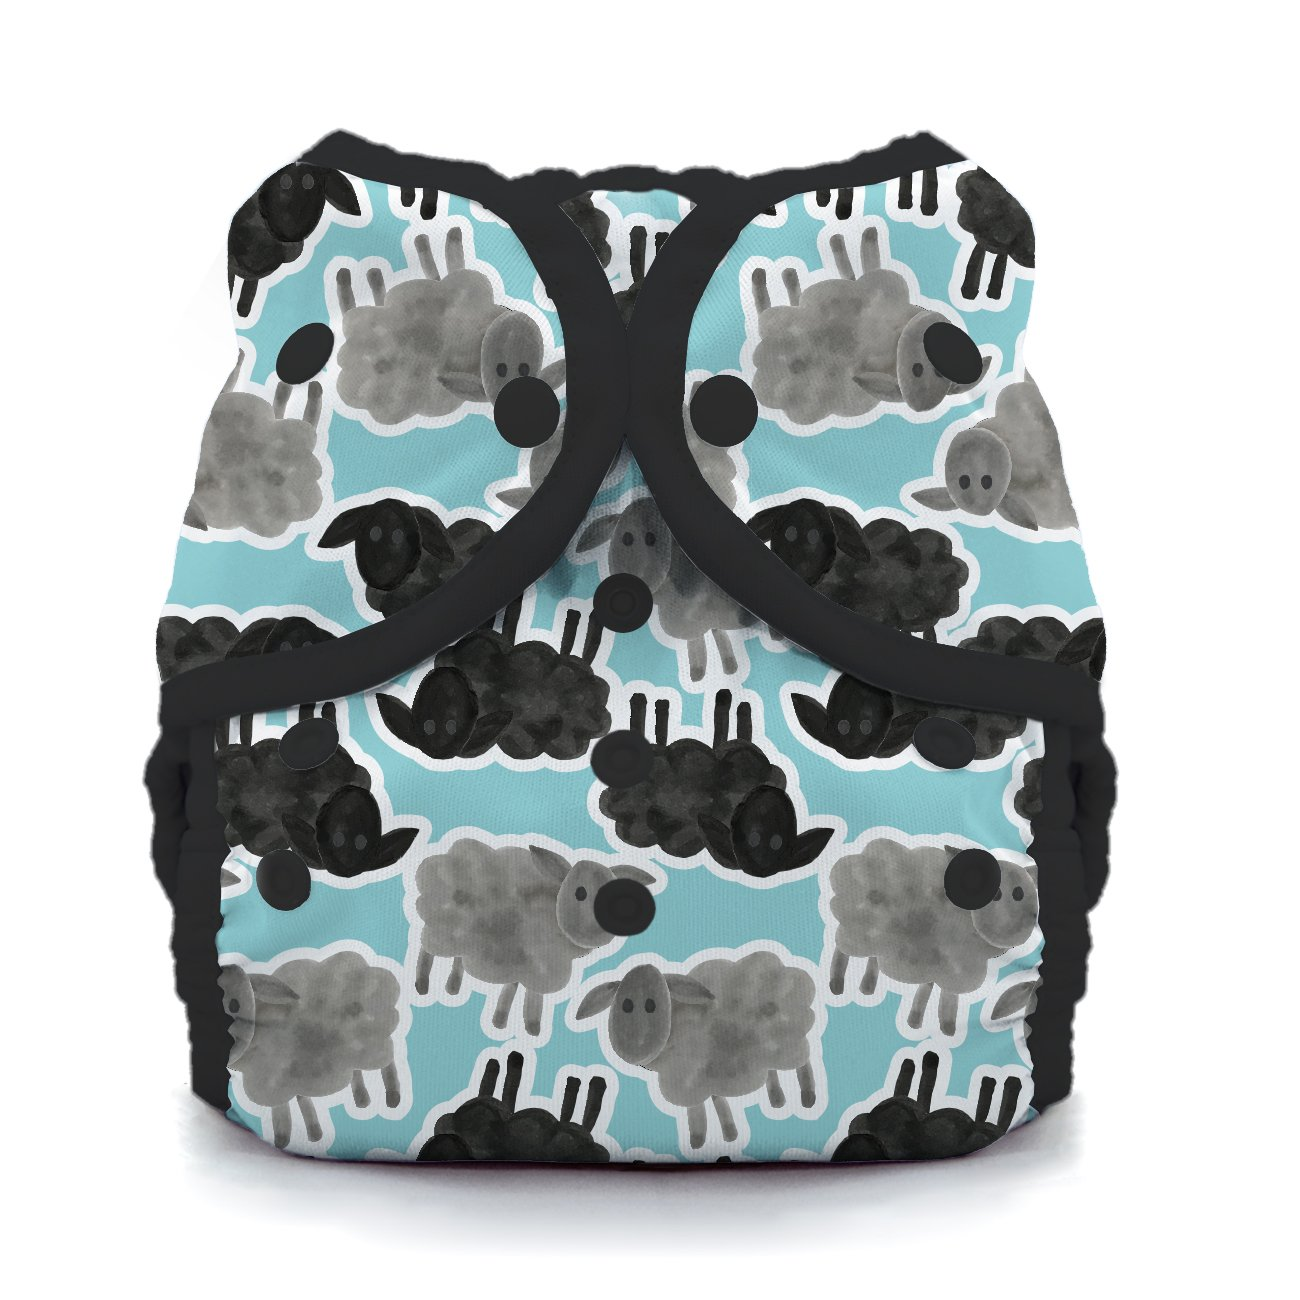 Thirsties TDWSCS2 Snap Duo Wrap Counting Sheep Size Two (18-40-pound) Diapers